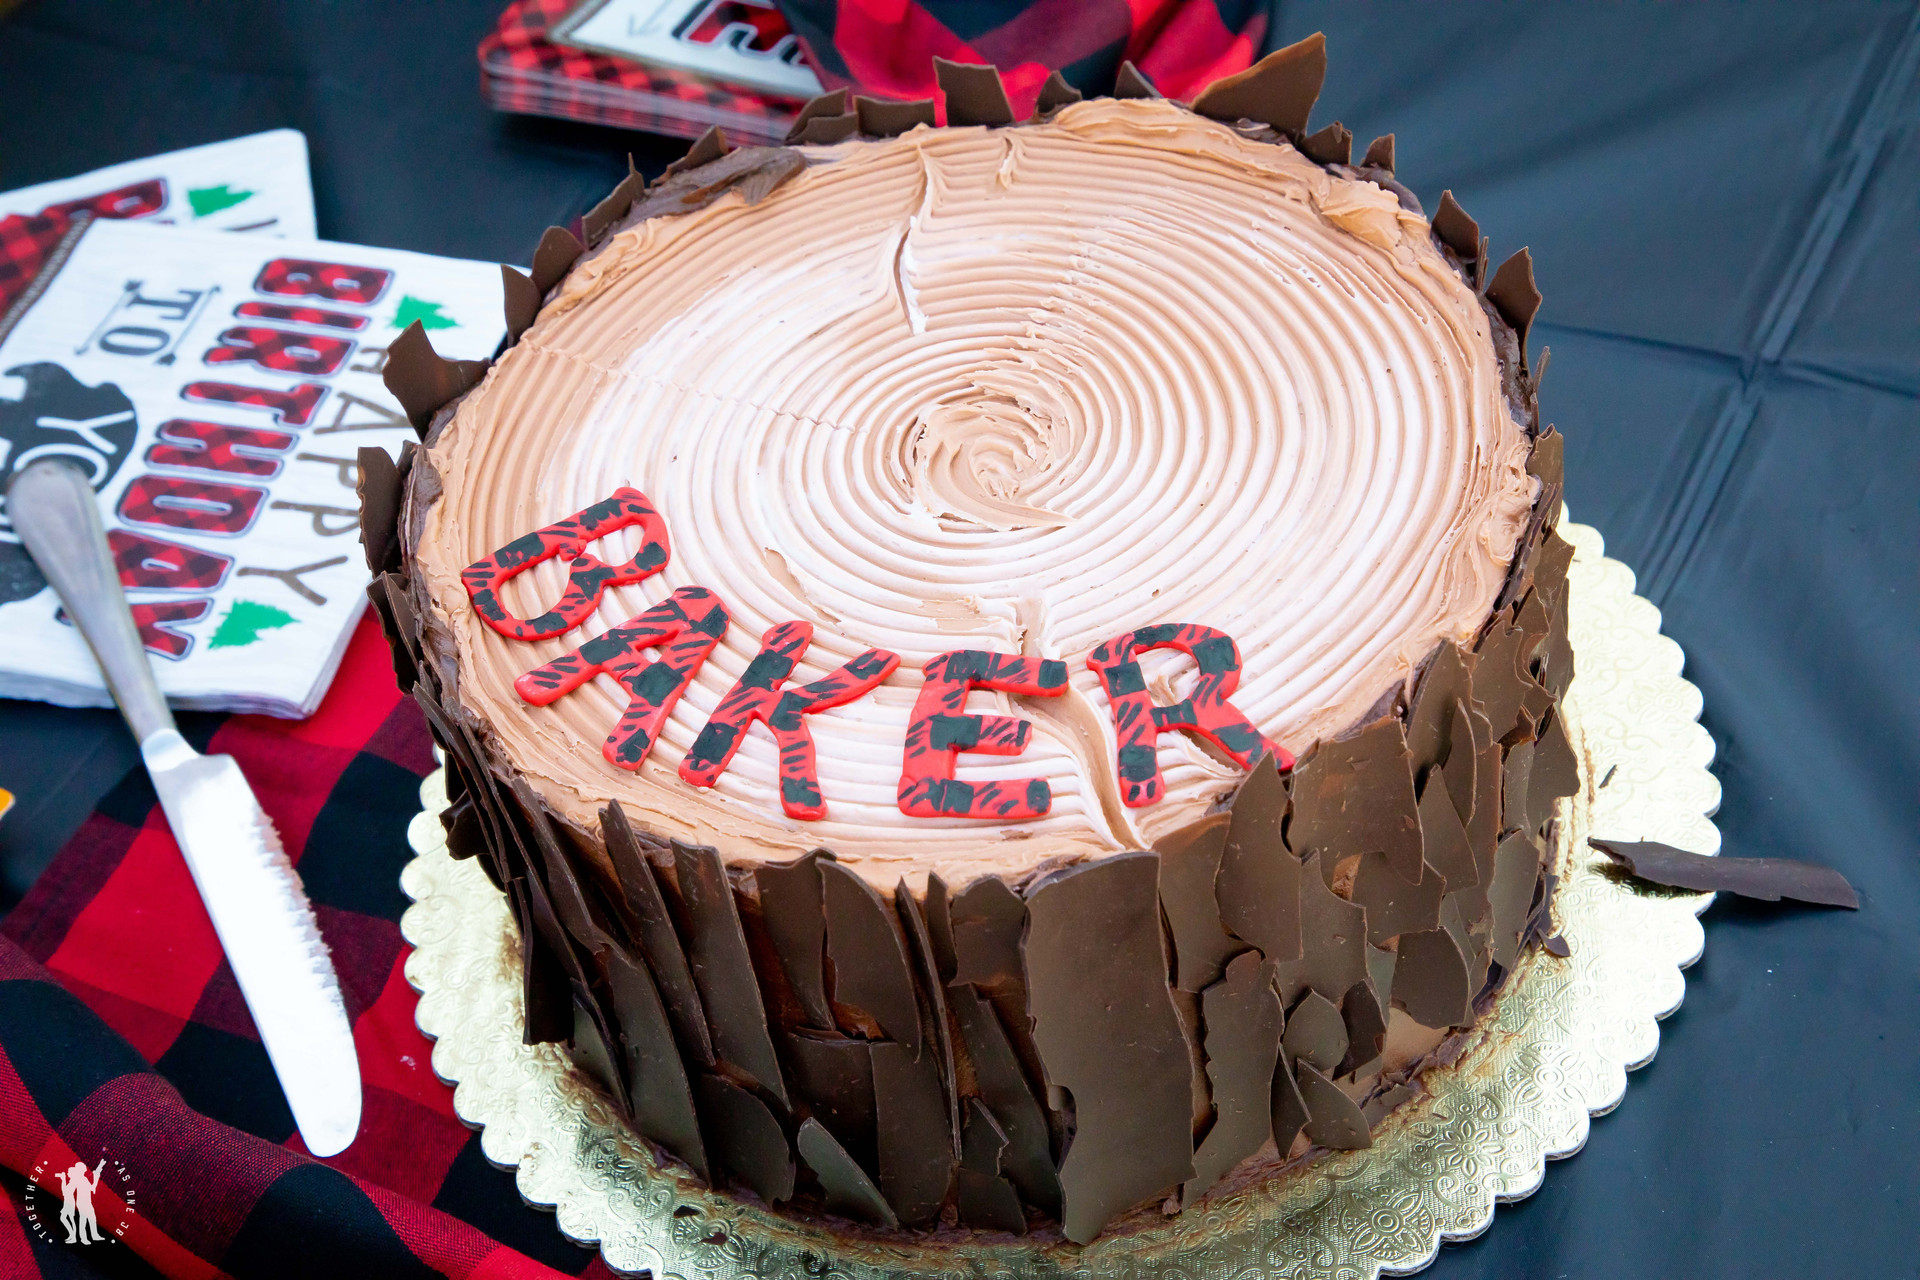 Birthday cake for the guests of Baker